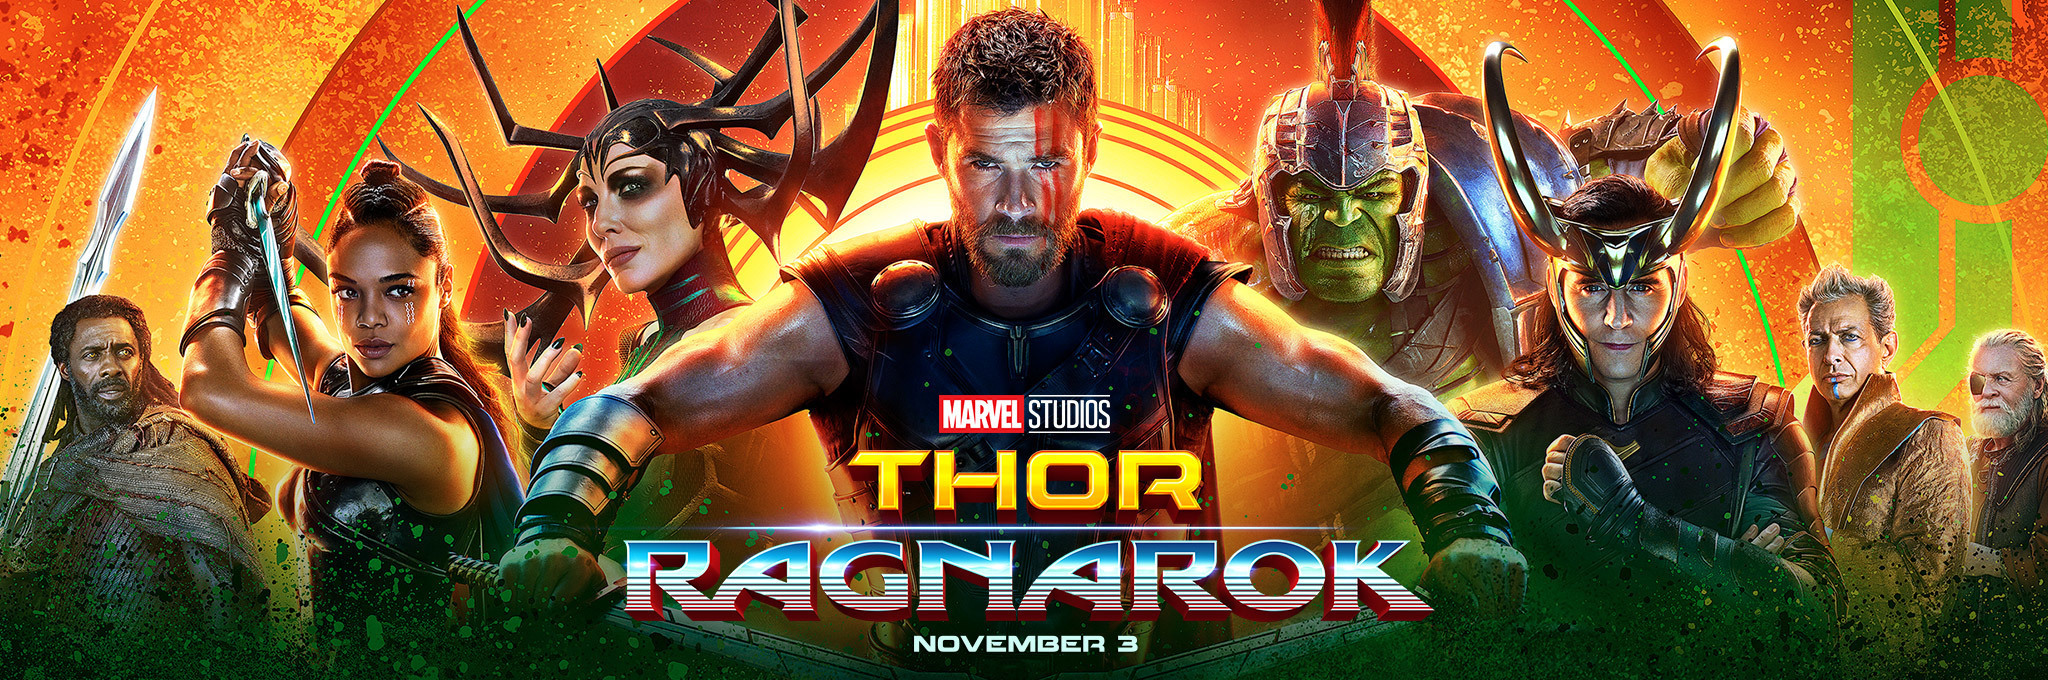 r_thorragnarok_header_a586805f